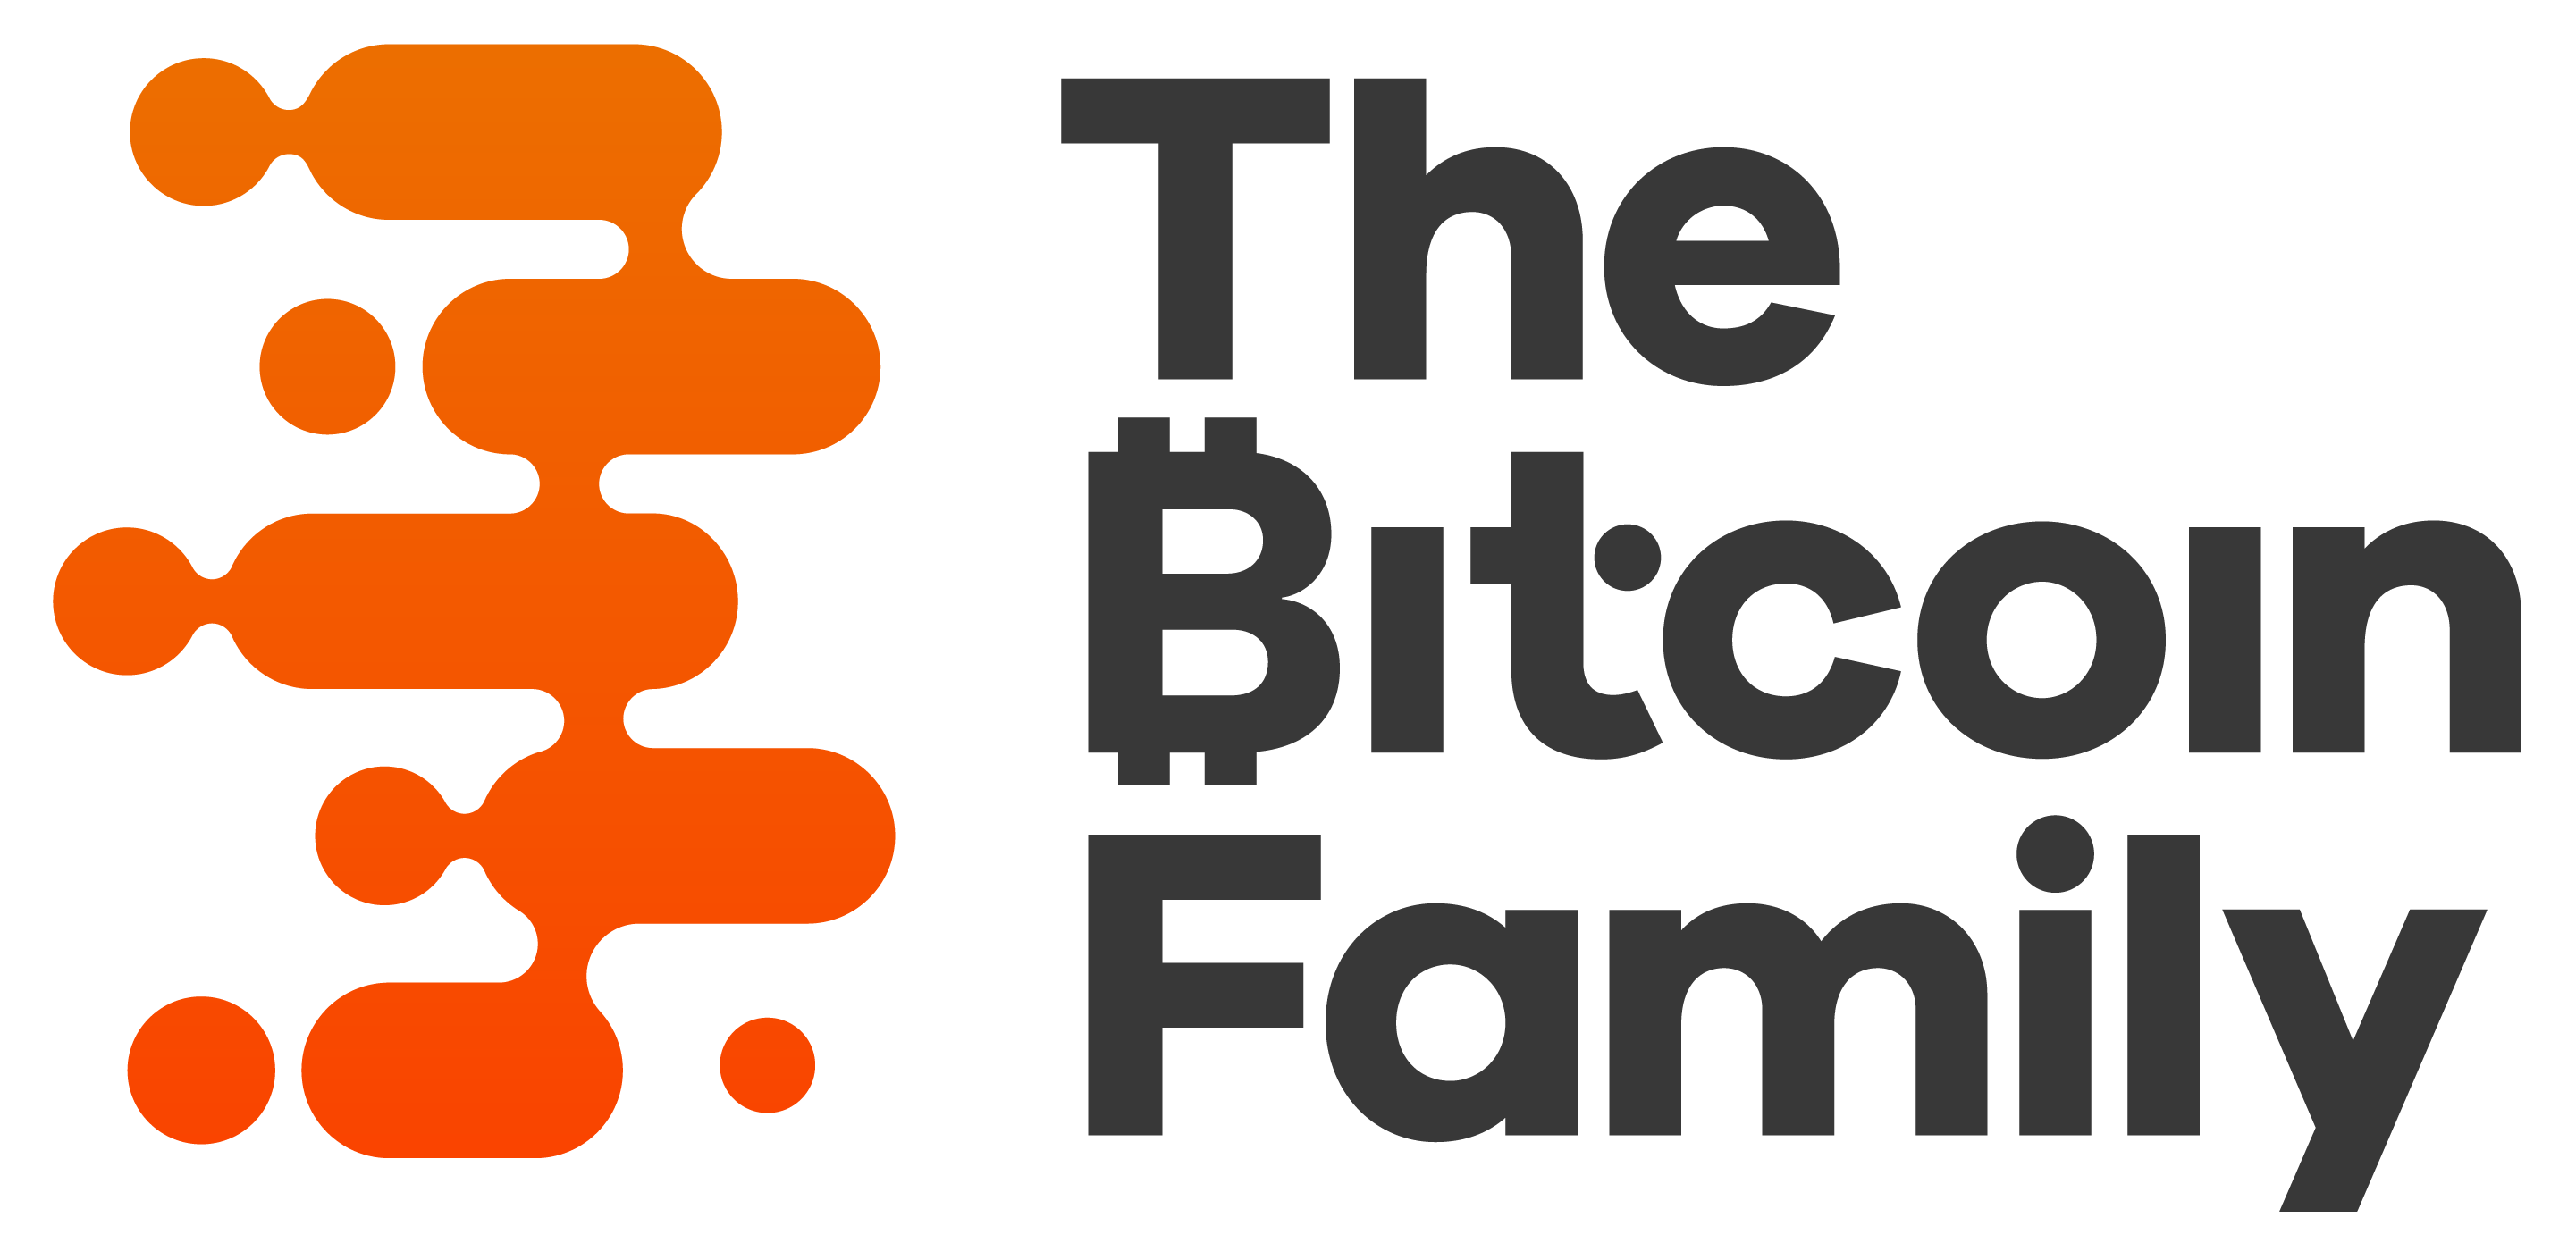 The Bitcoin Family